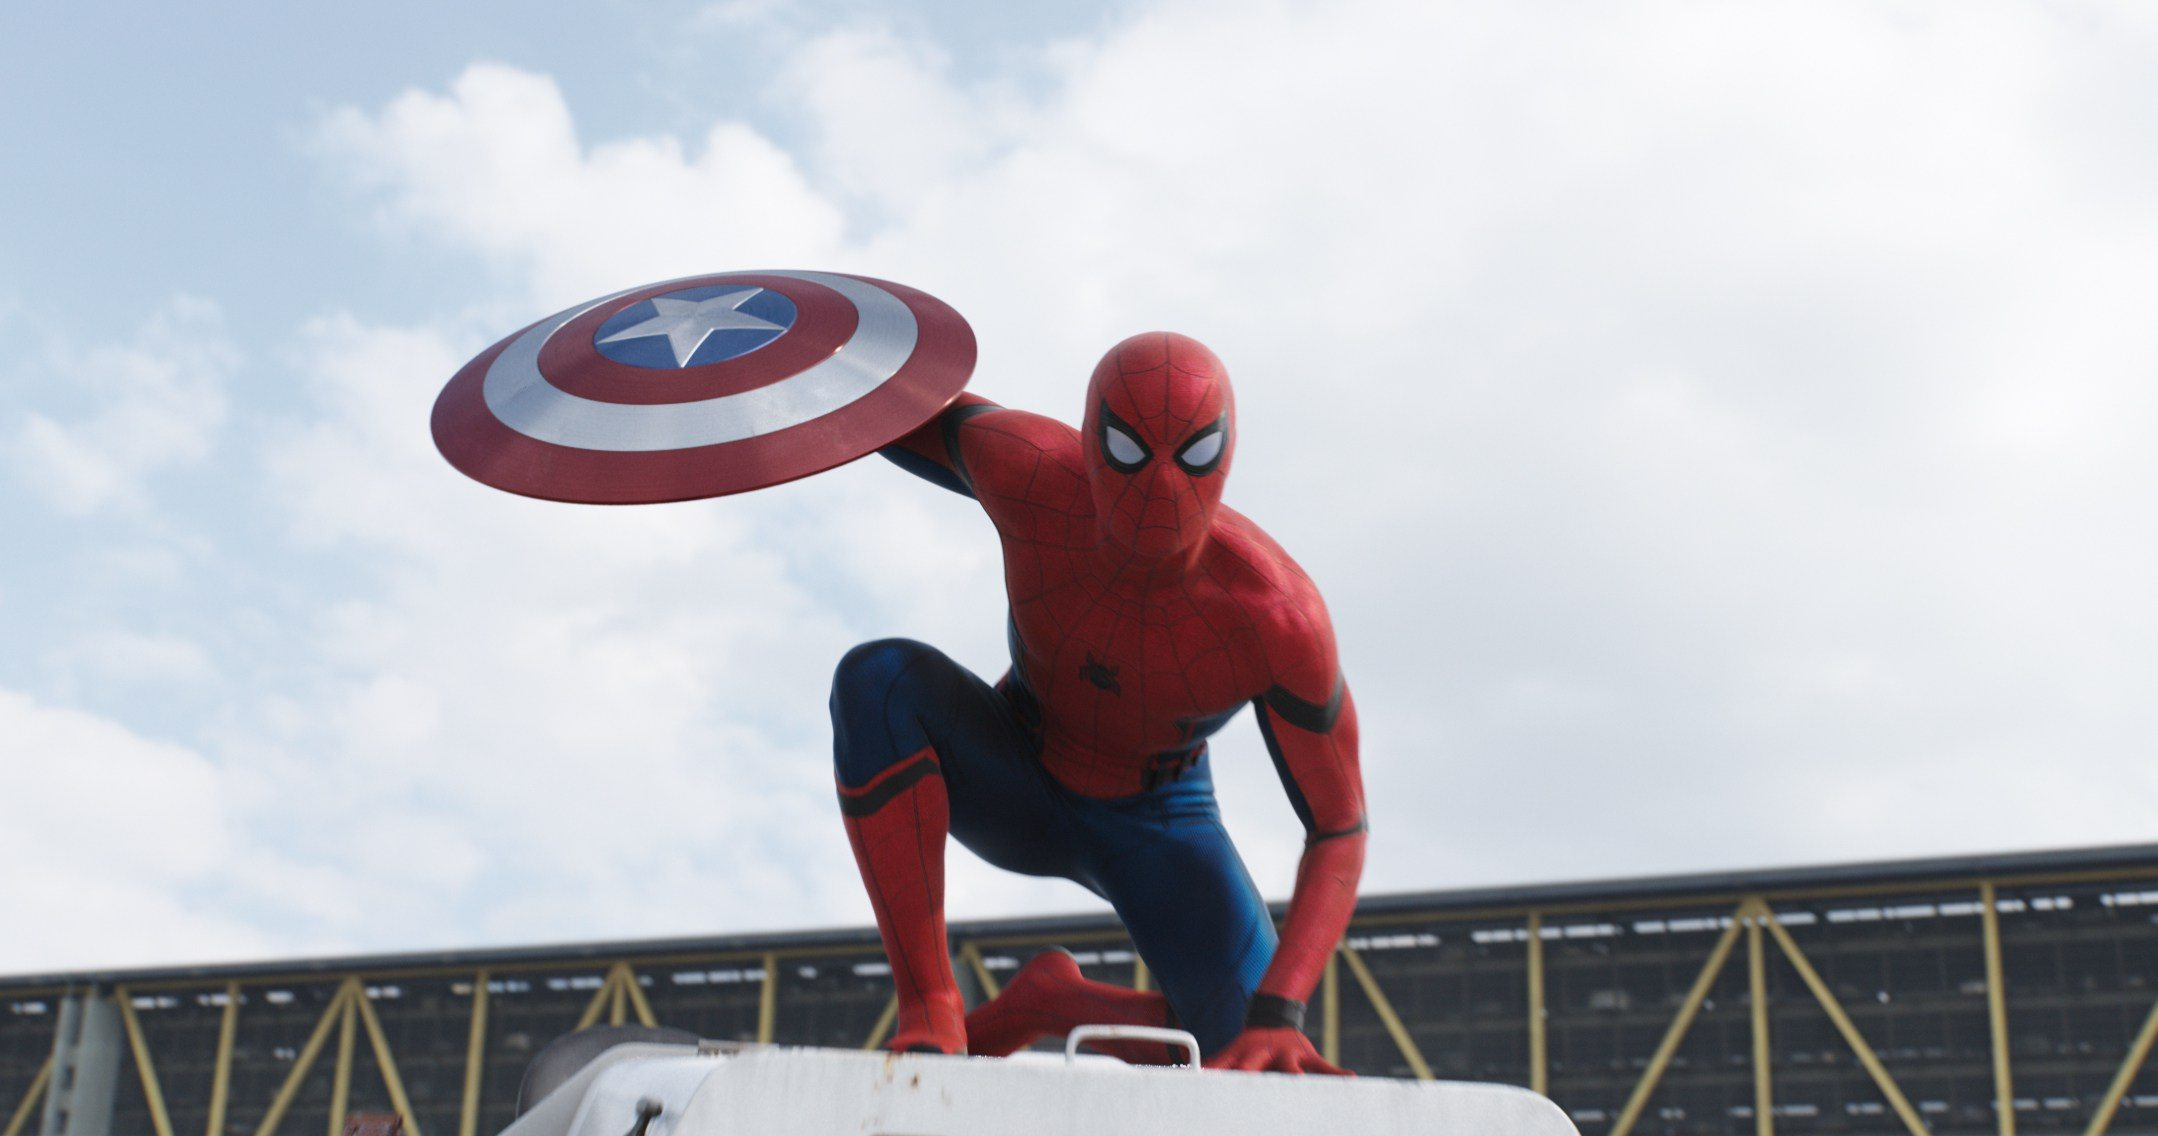 Spider-Man, Spider-Man, does whatever Toby McGuire or Andrew Garfield can... (Image Source: Marvel)